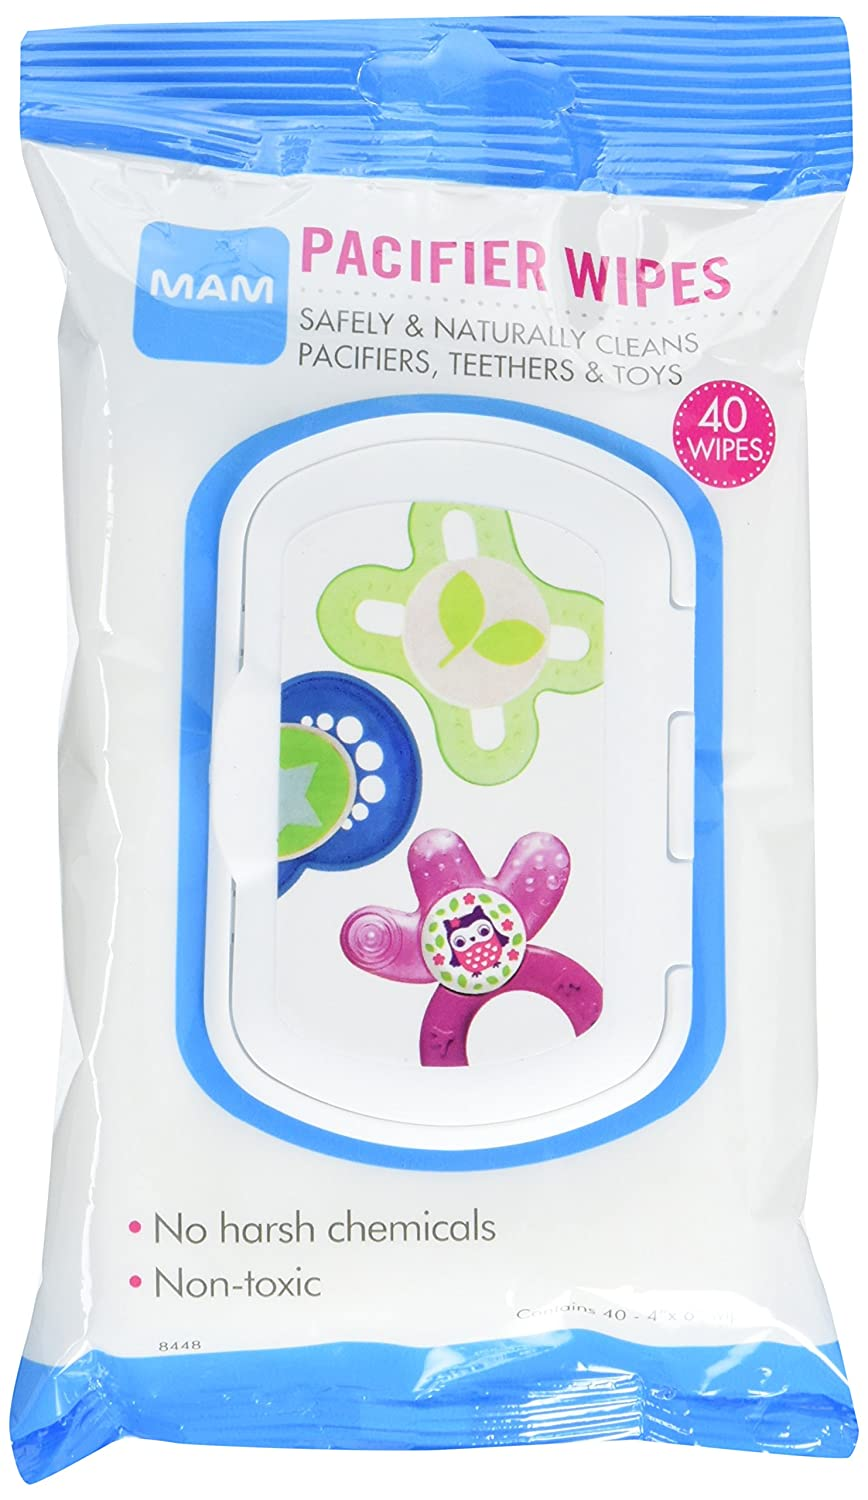 MAM Pacifier Wipes, 40 Count 8448-024-4-1